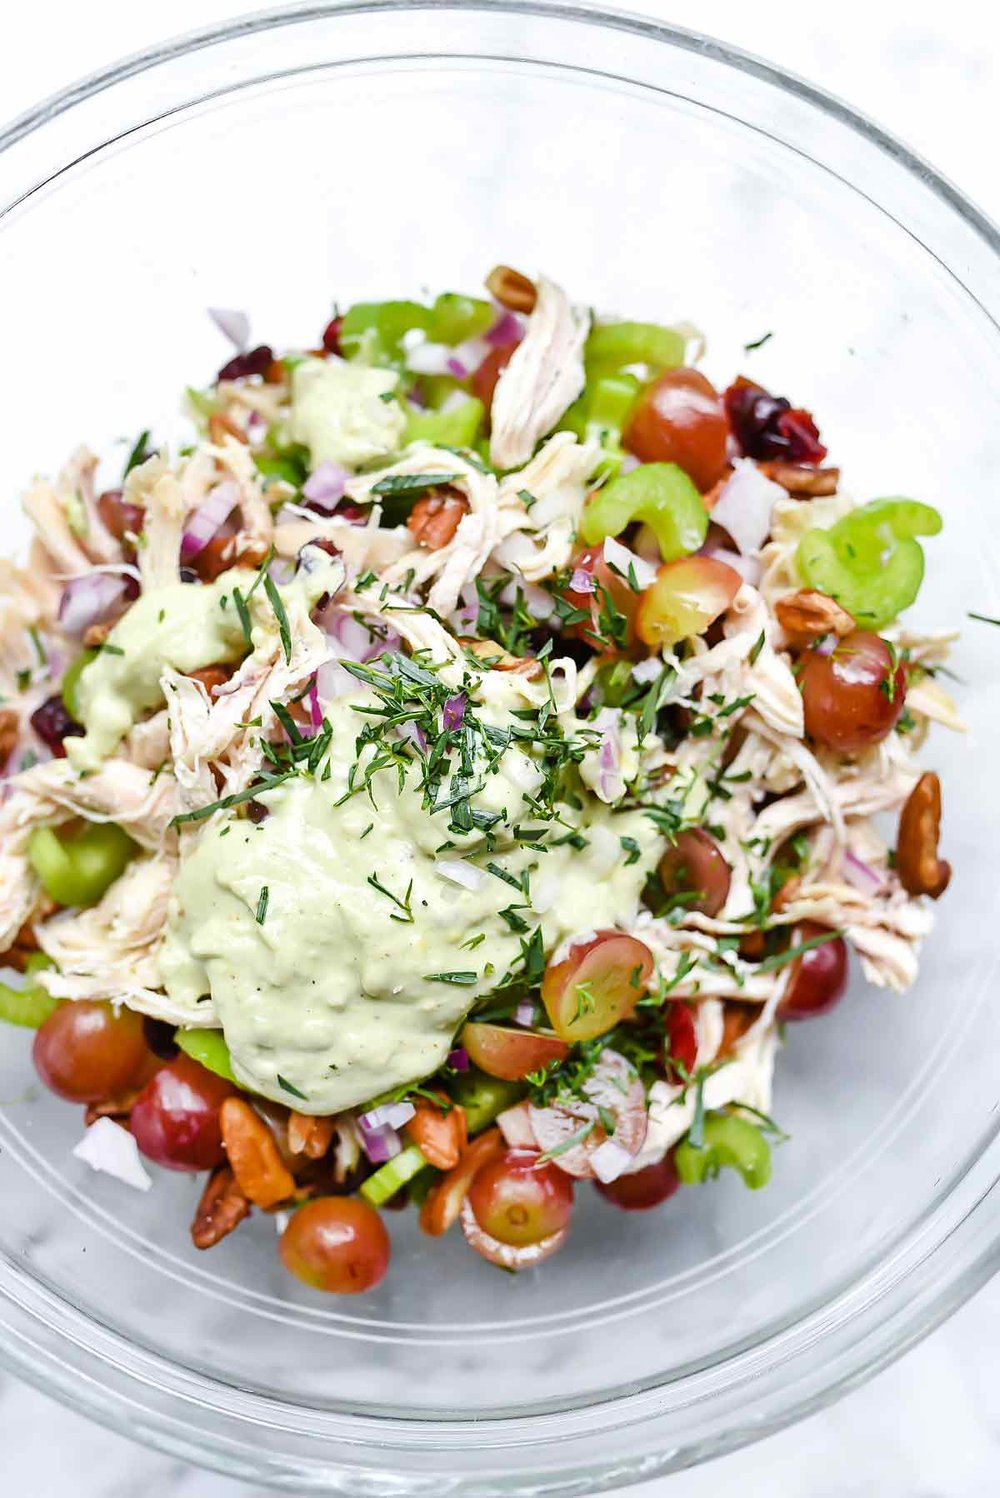 Avocado-Yogurt-Chicken-Salad-foodiecrush.com-004.jpg